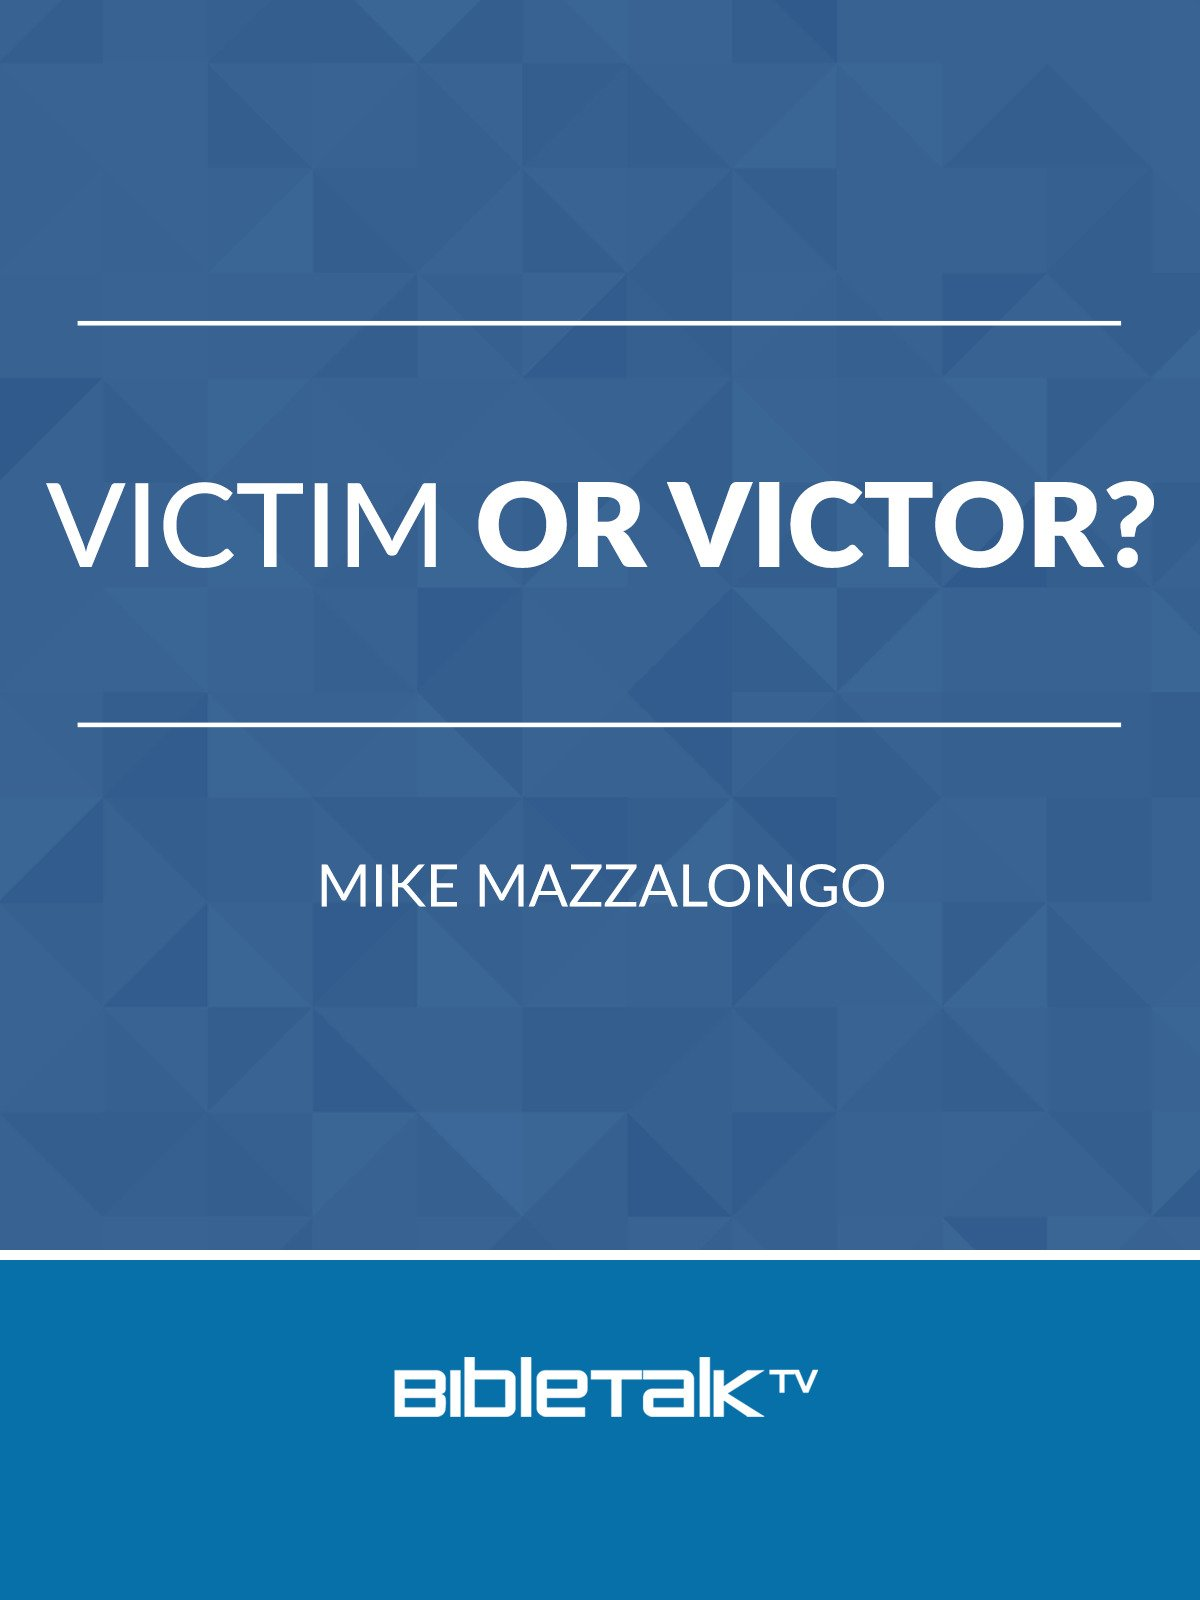 Victim or Victor?